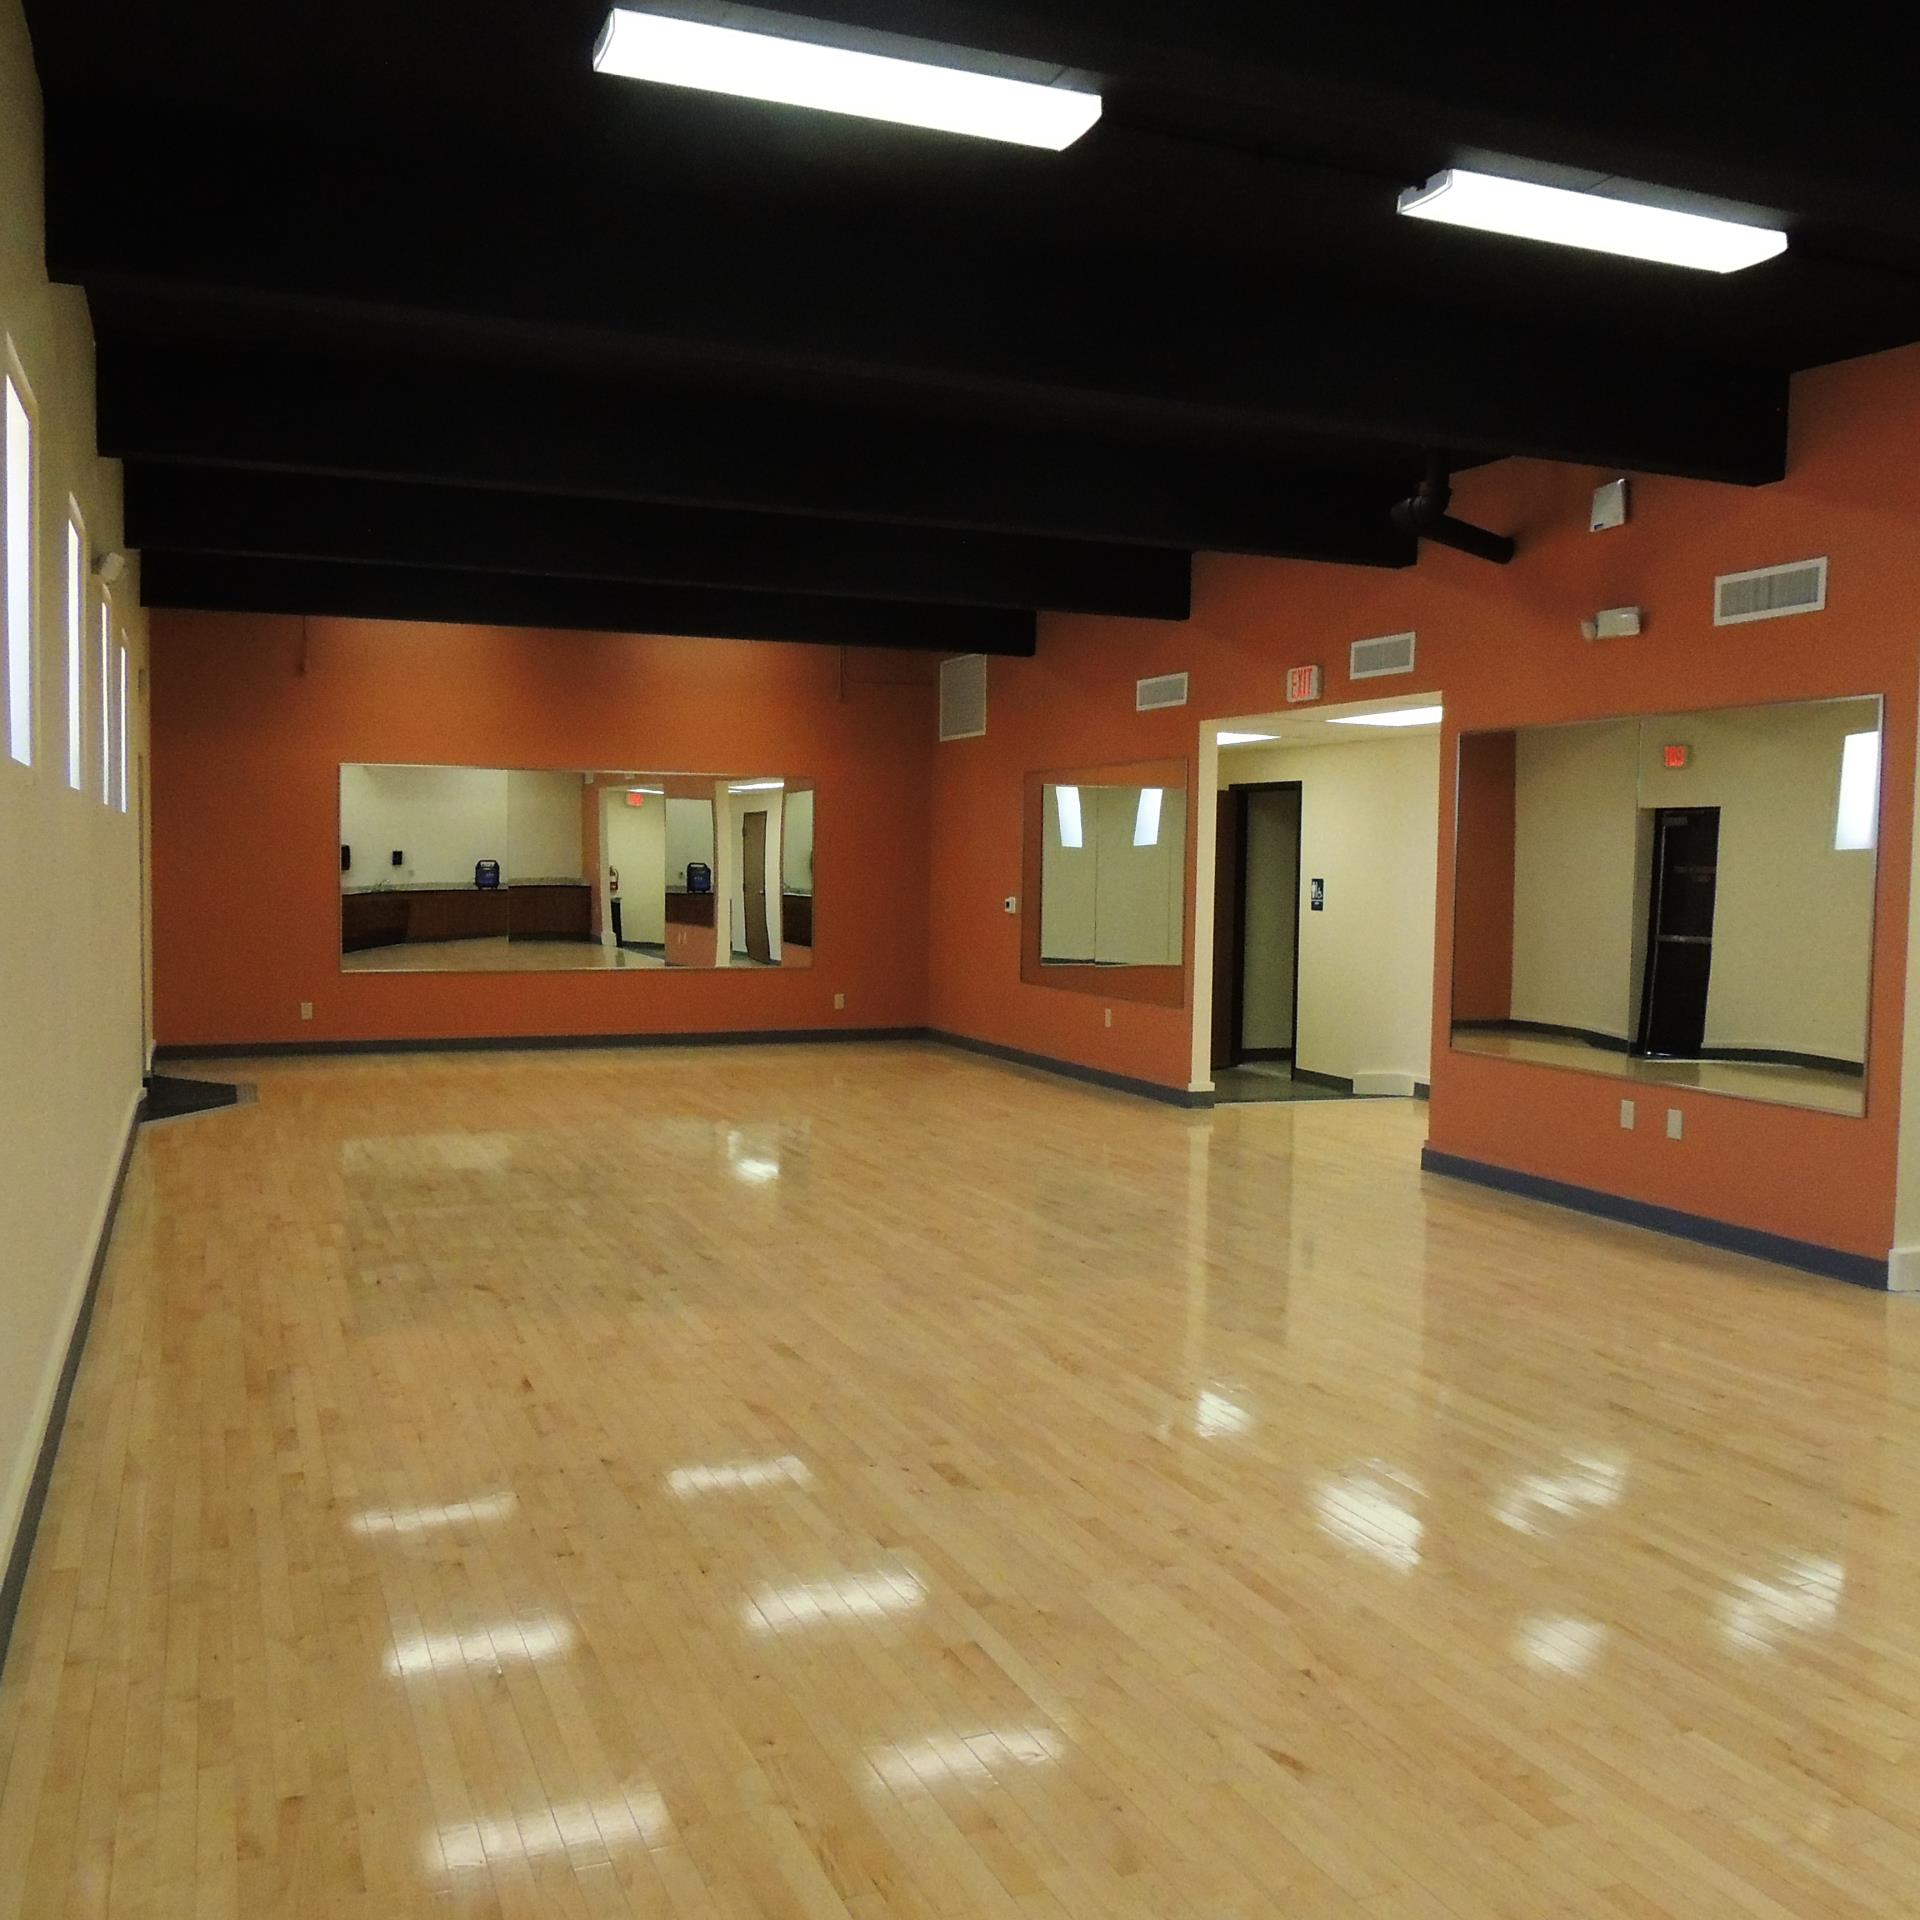 Dance, Fitness, Aerobics Room